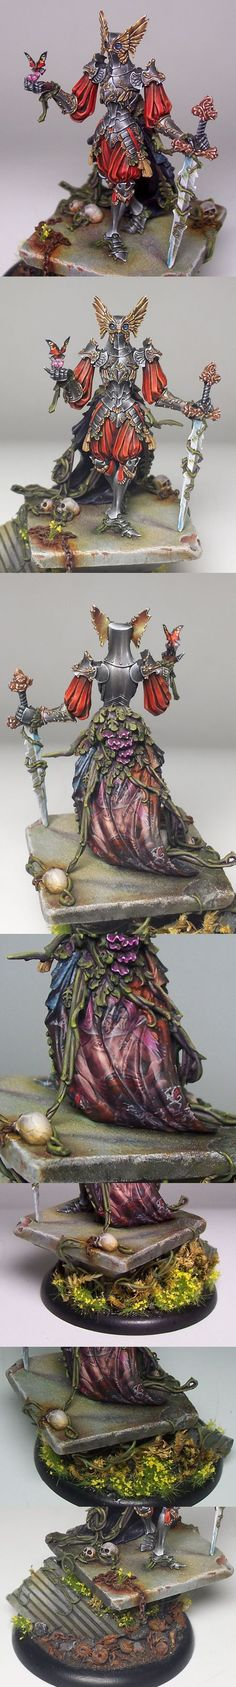 Energy Efficient Home Upgrades in Los Angeles For $0 Down -- Home Improvement Hub -- Via - Kingdom Death - Flower Knight close ups by Tommie Soule